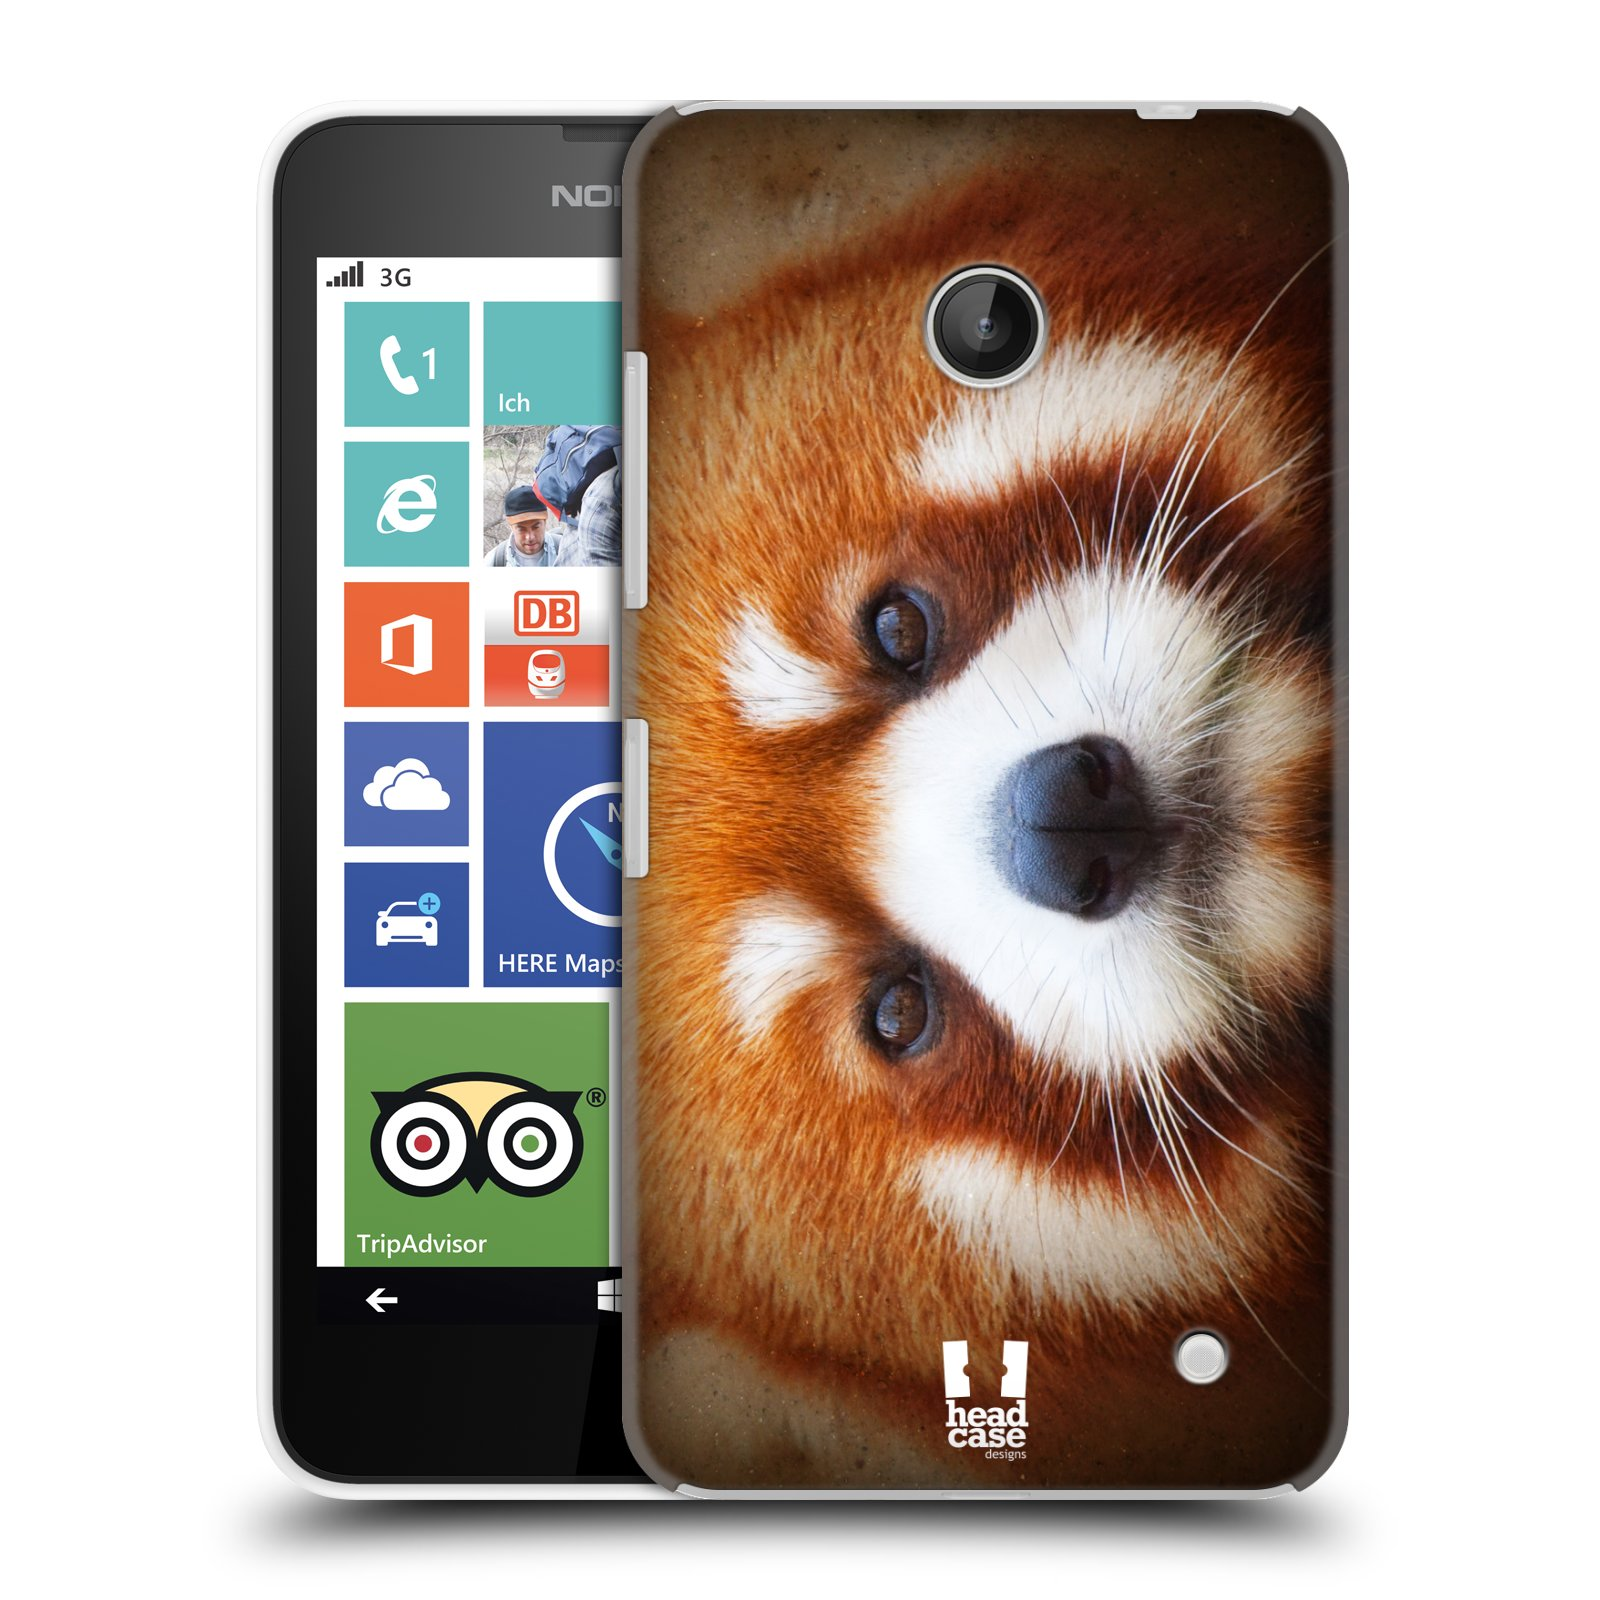 HEAD CASE ANIMAL FACES SERIES 2 SNAP-ON BACK COVER FOR NOKIA LUMIA 635